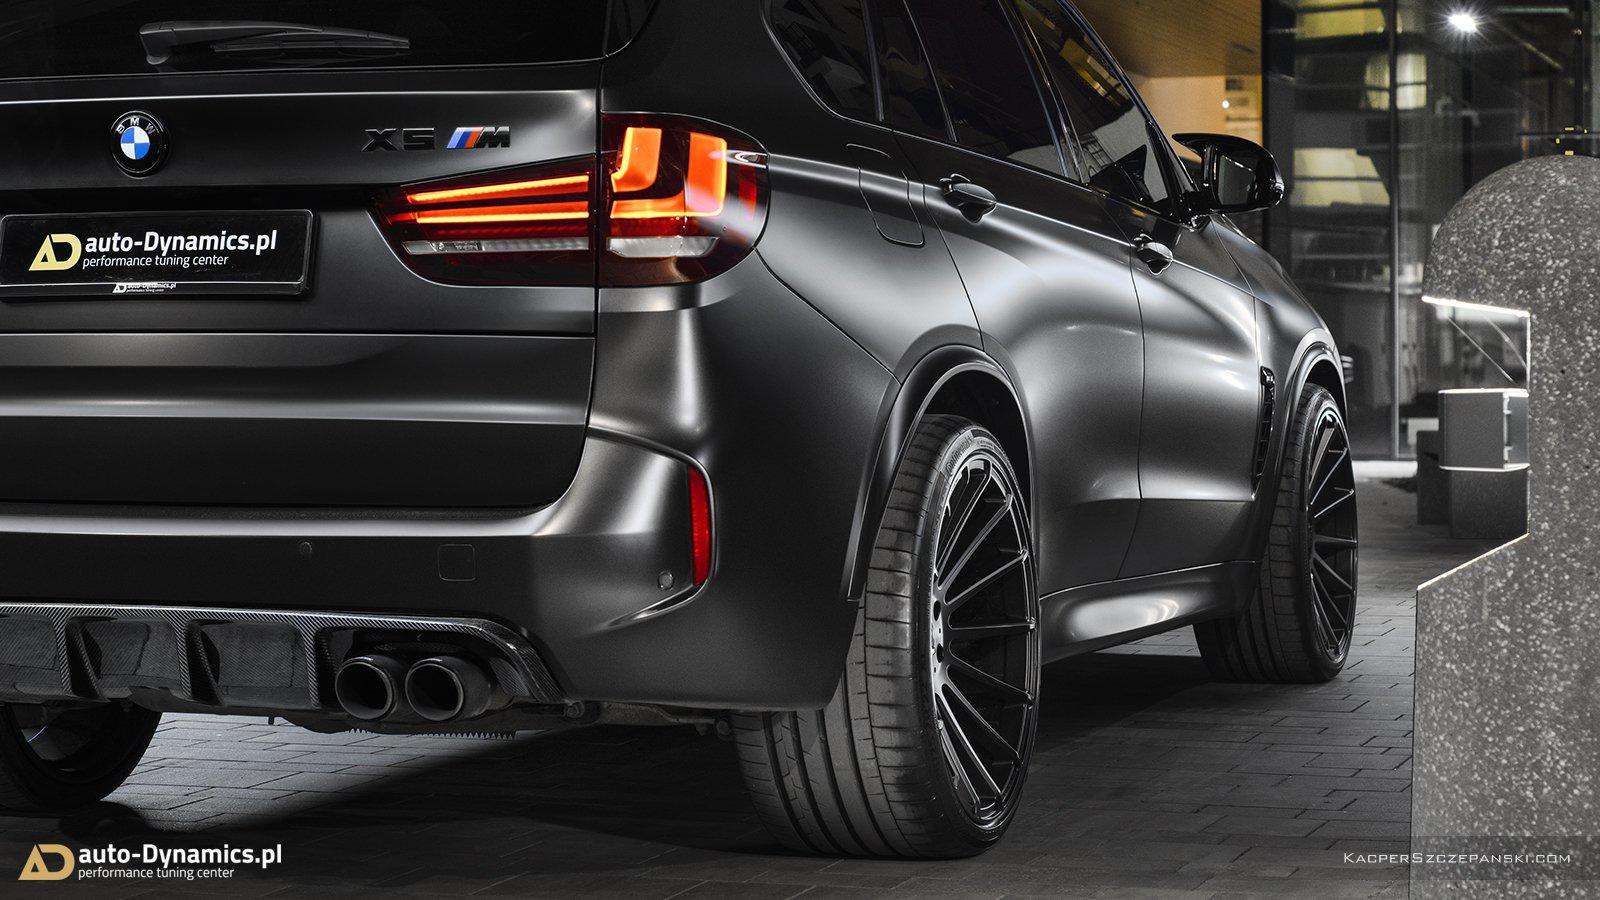 BMW X5 M by Auto-Dynamics - BMW X5 M by Auto-Dynamics